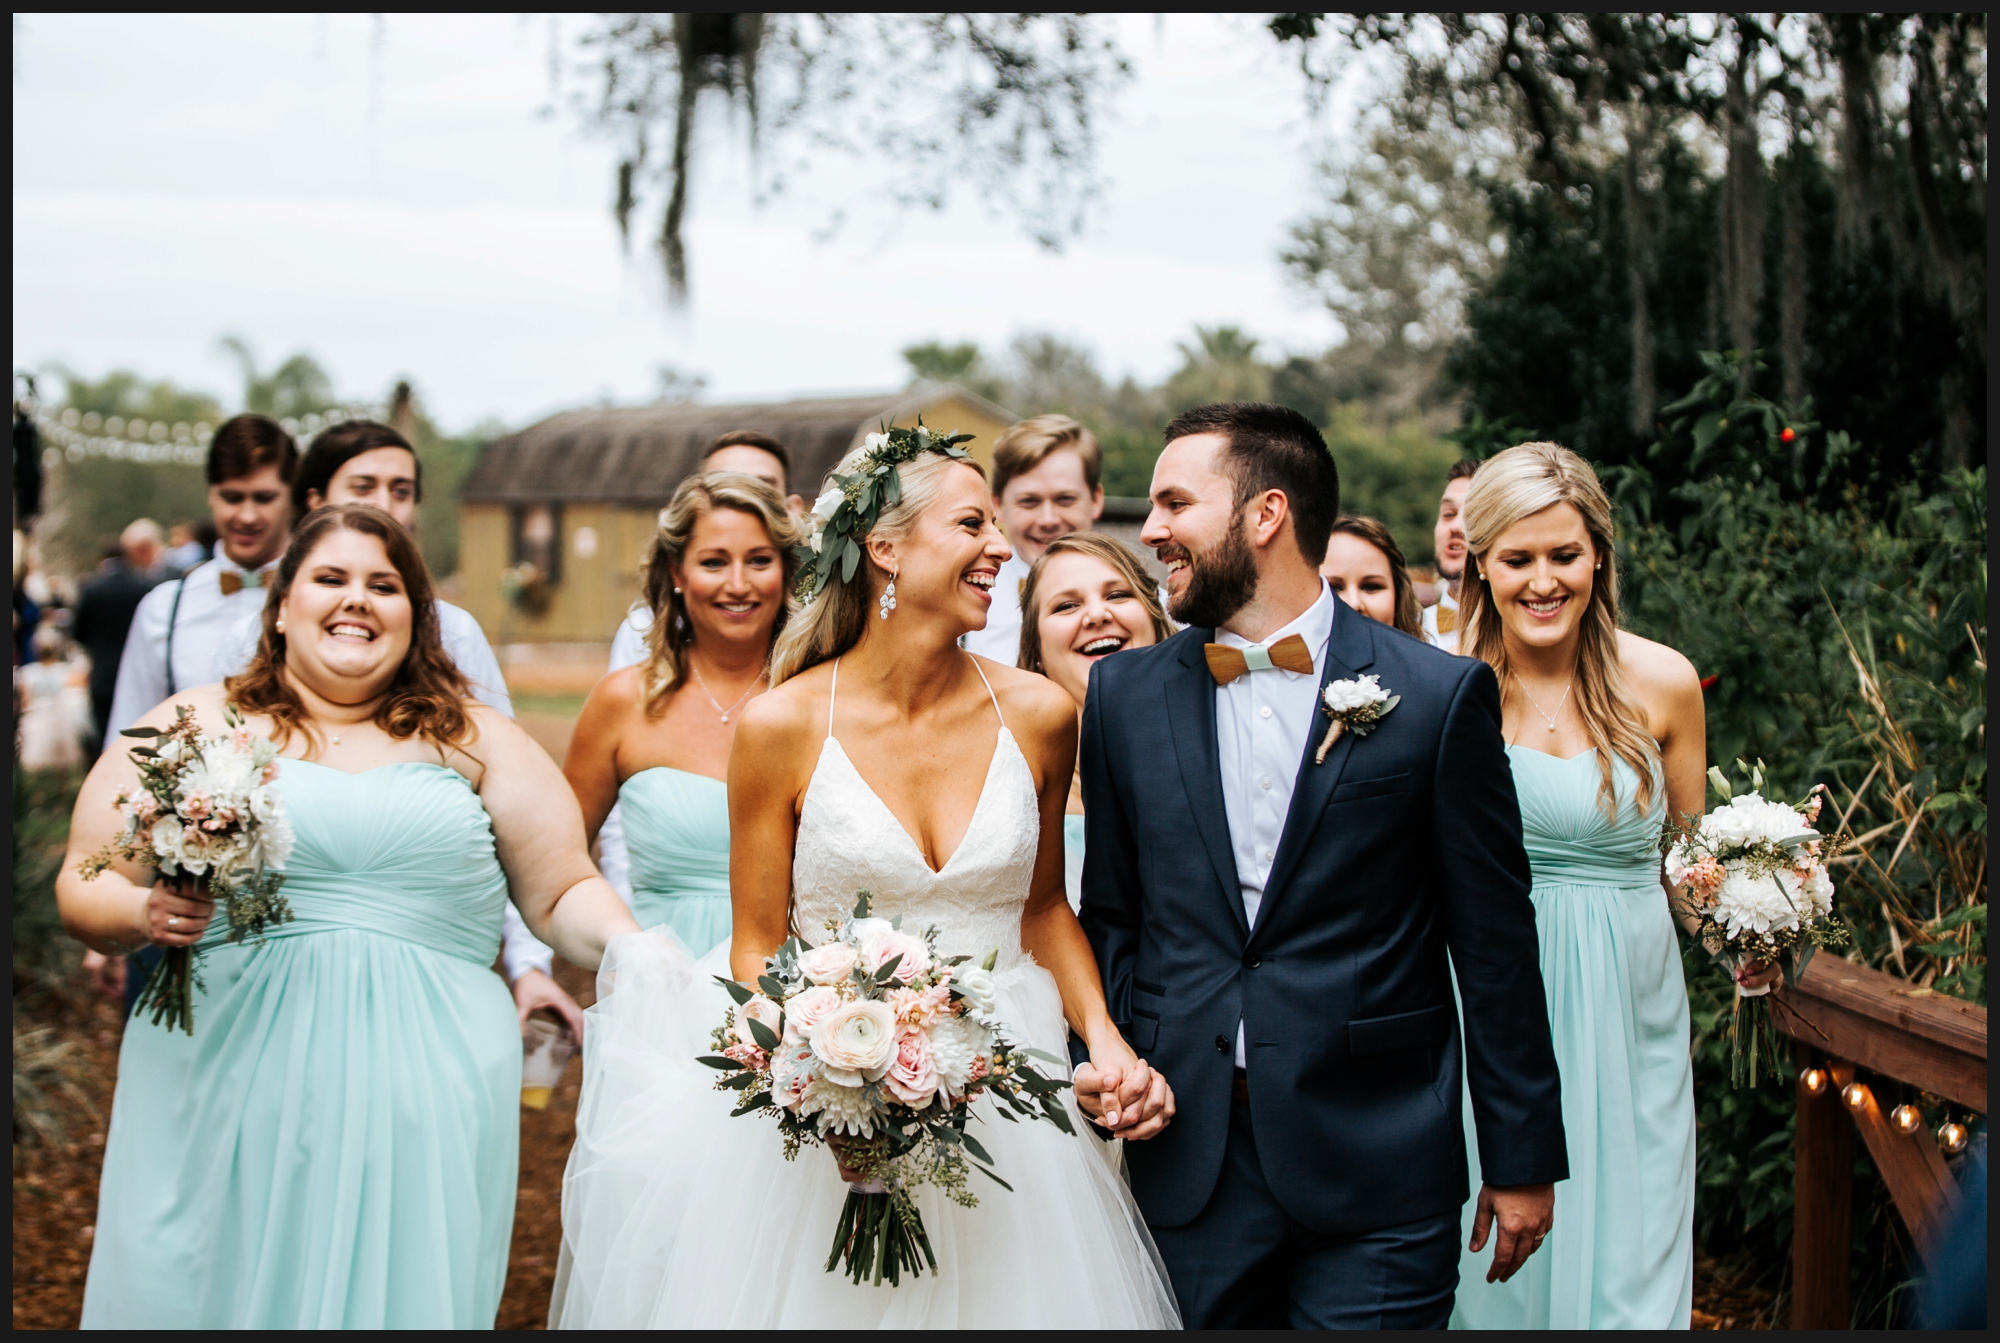 OrlandoWeddingPhotographerMattSierra_0090.jpg